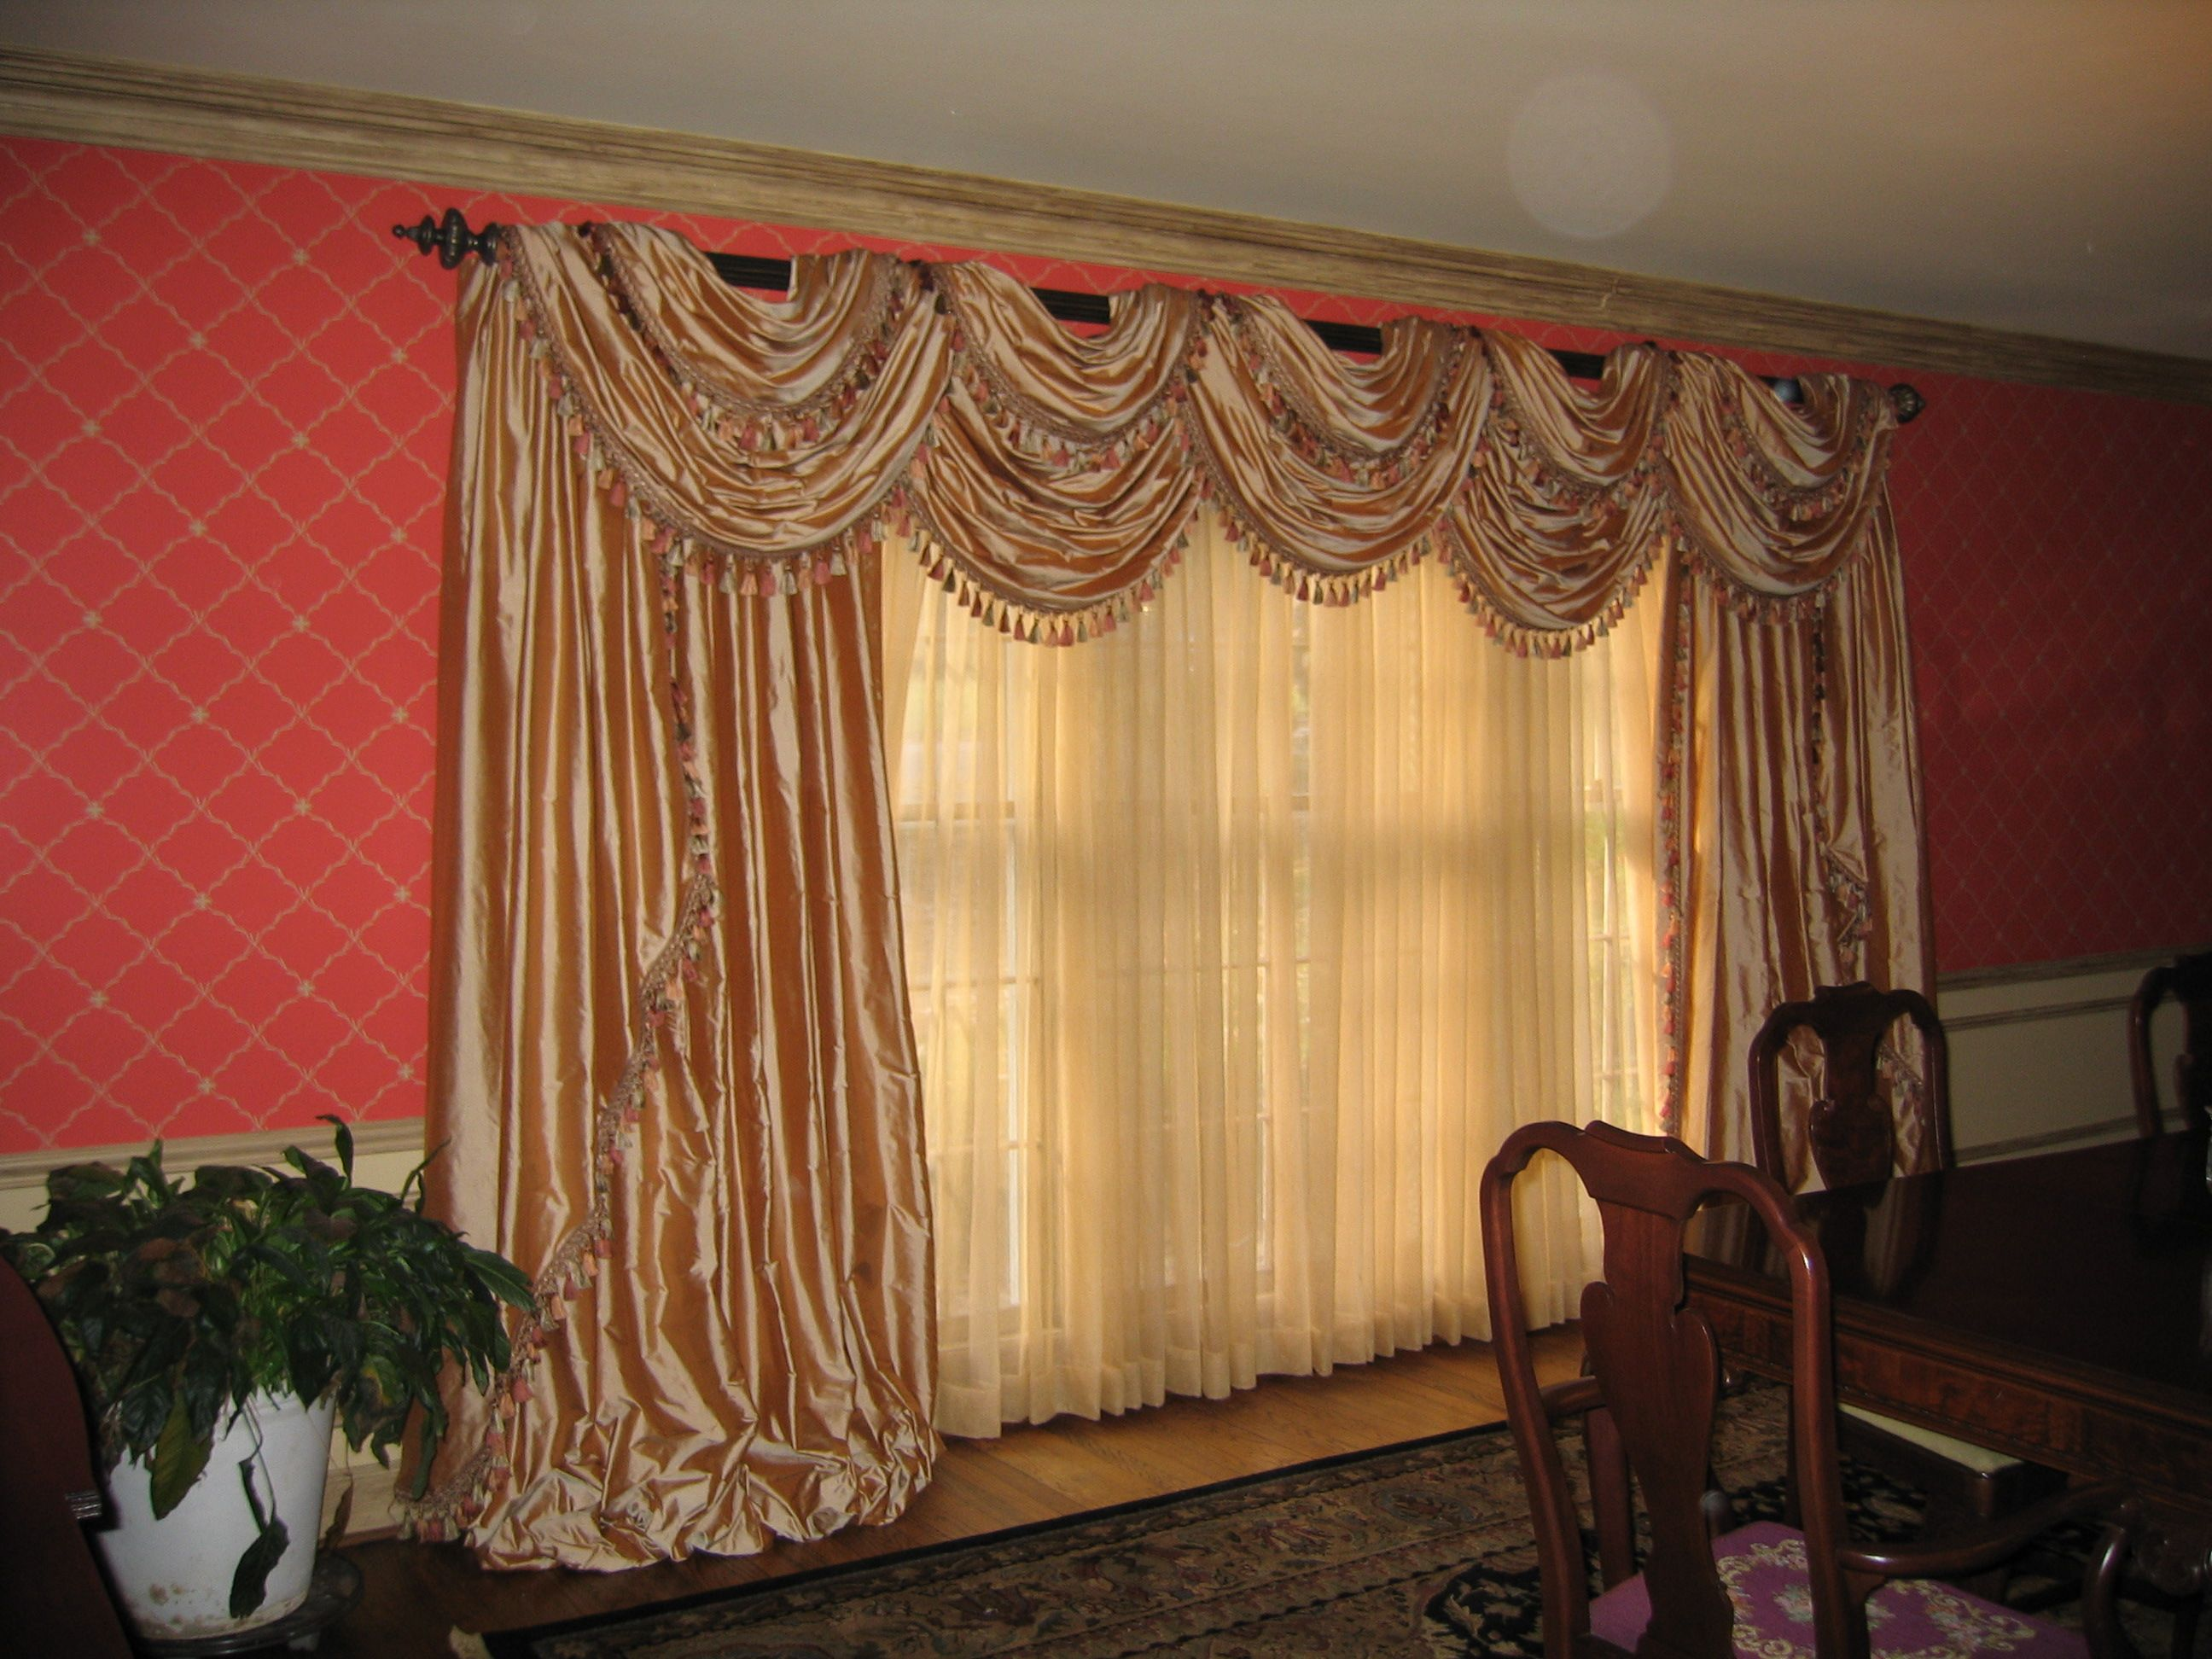 Curtain lengths puddle - Double Layered Pole Swags W Cascades Stationary Side Panels W Puddle At Bottom